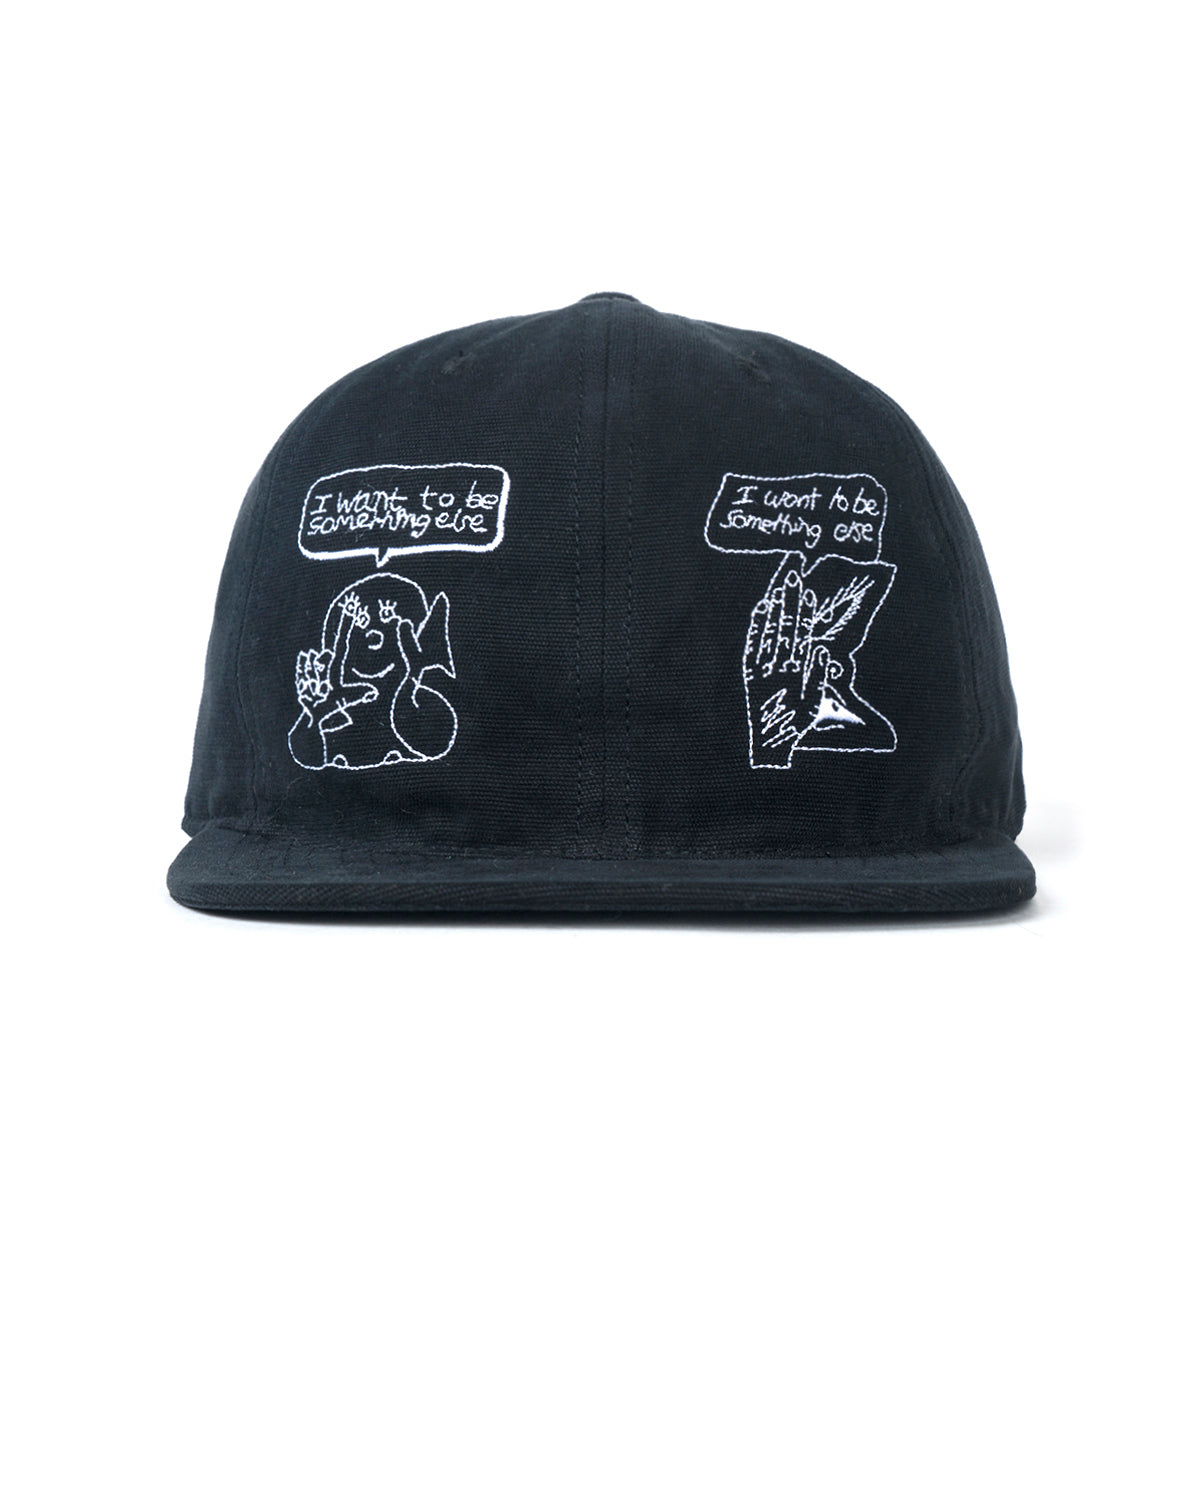 Leon Sadler Strap Back Hat - Black